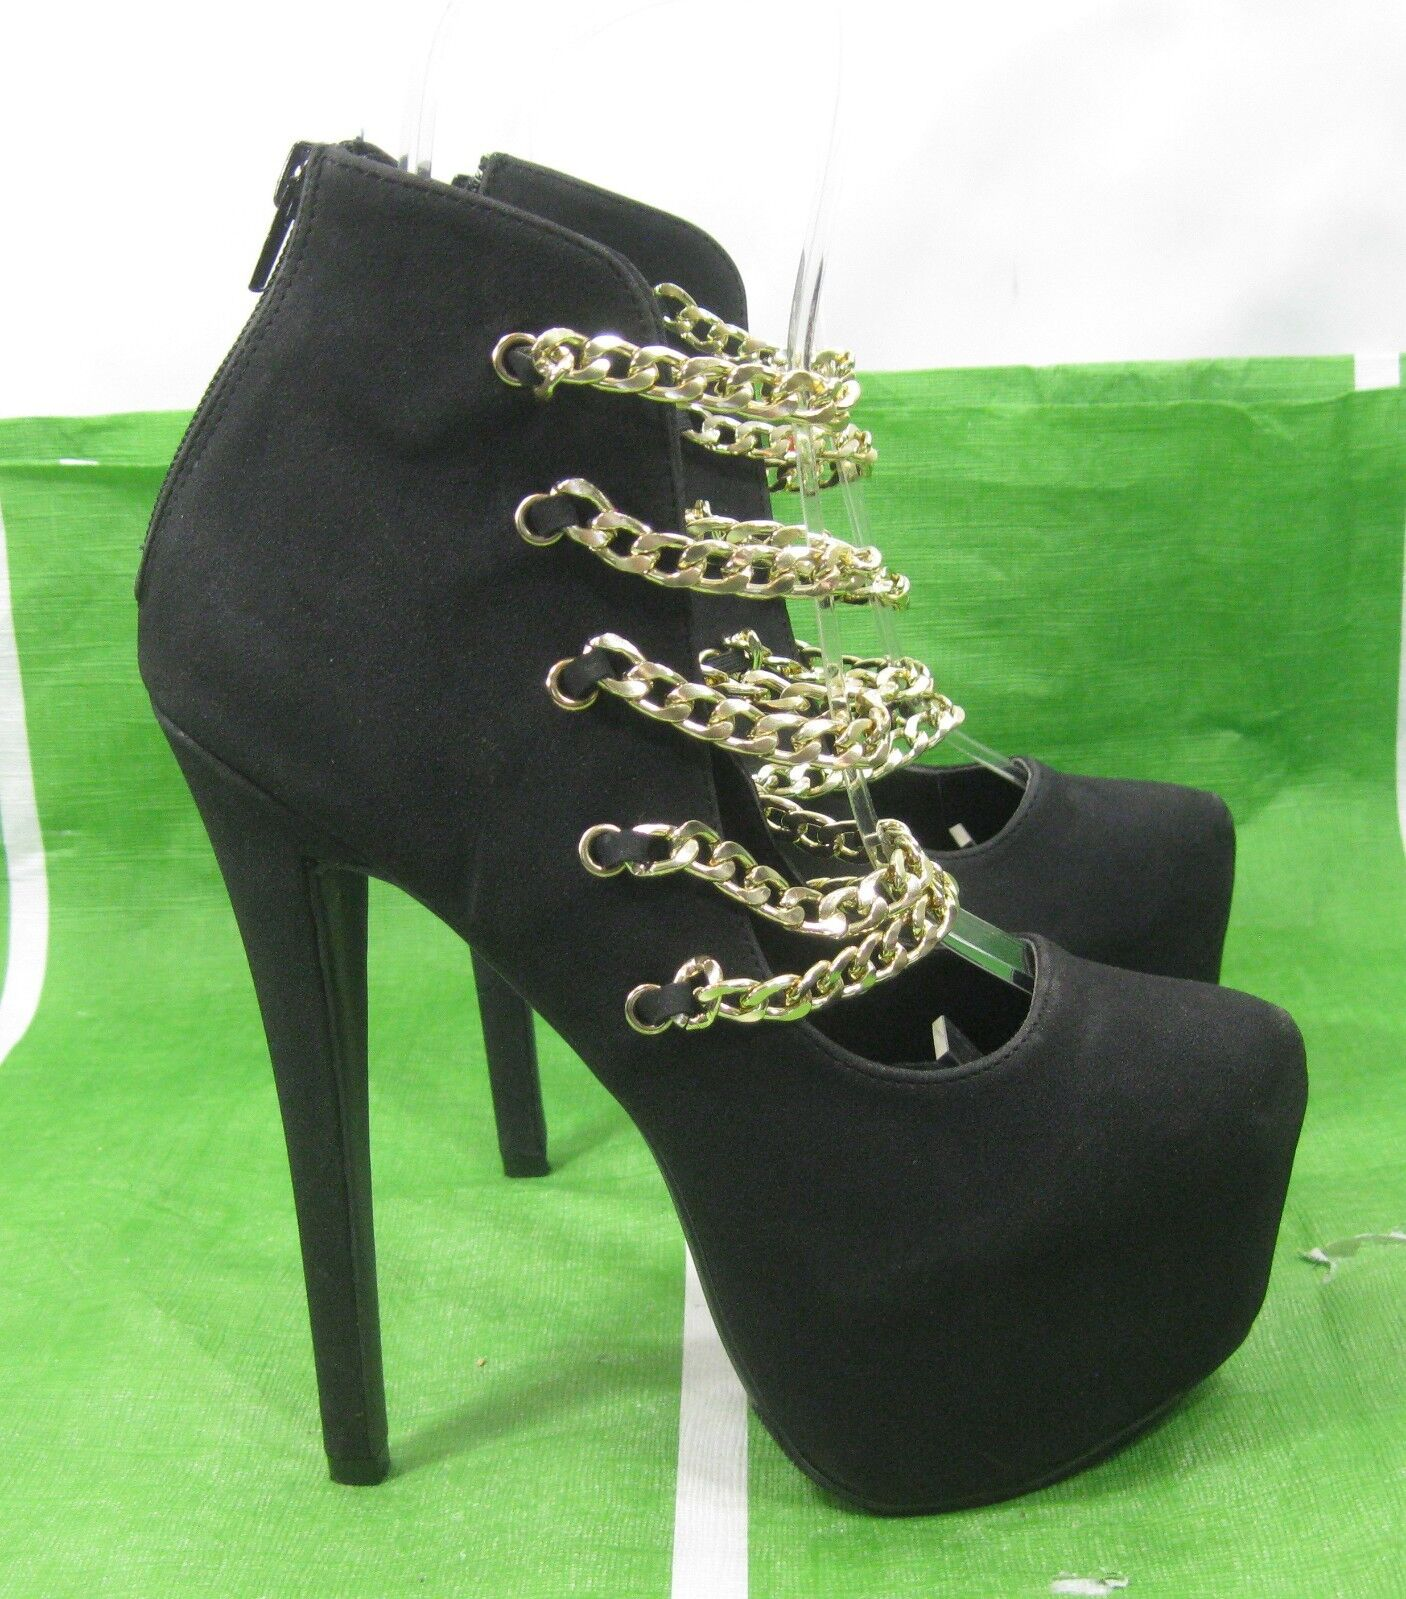 New ladie Black gold chains 6.5 Heel 2.5 Platform pointy Toe Sexy shoes Size 5.5